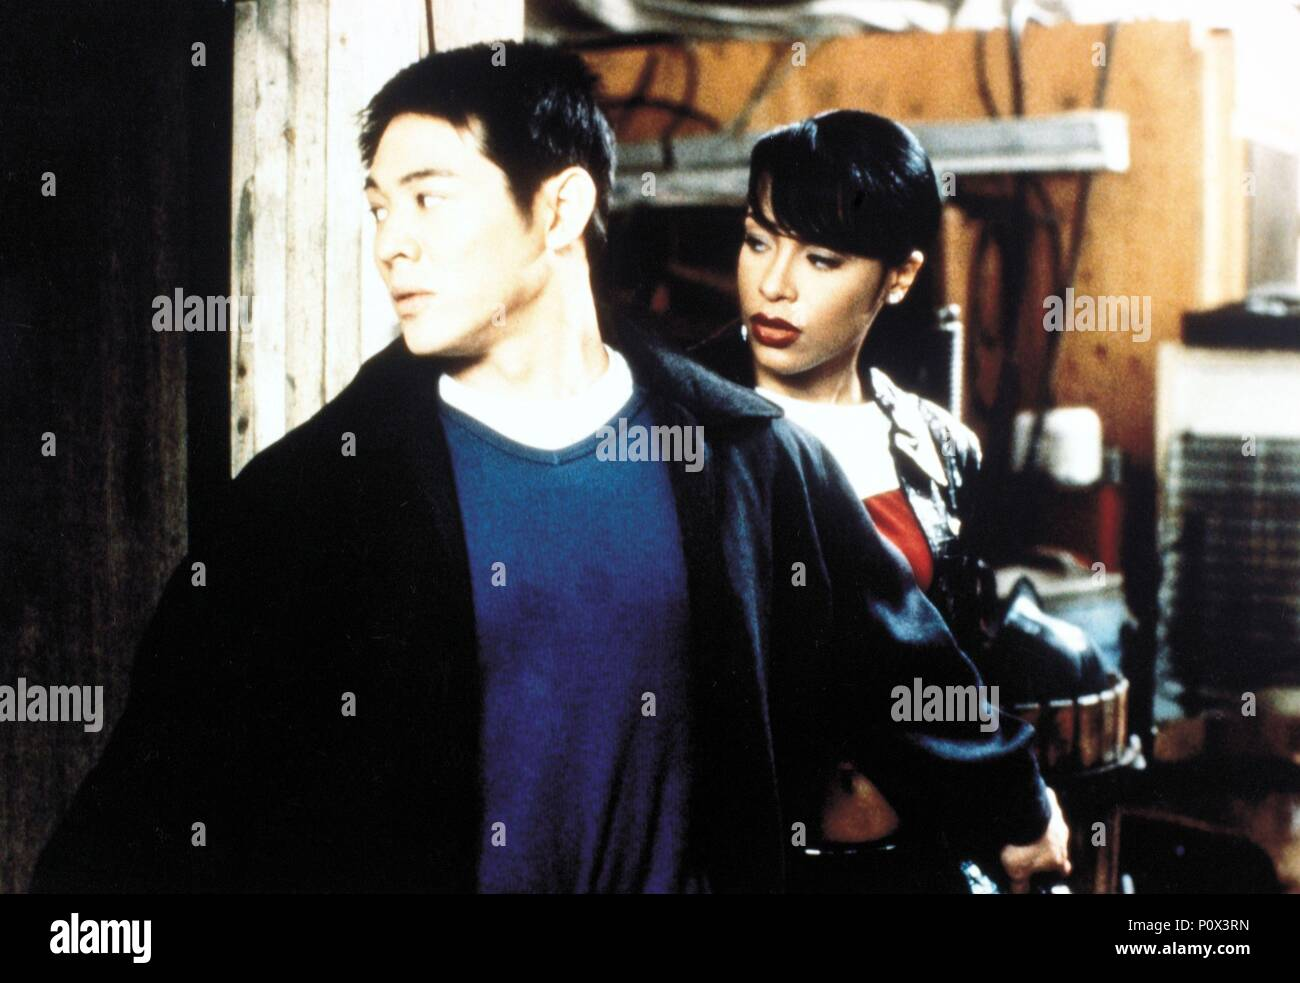 romeo must die actors